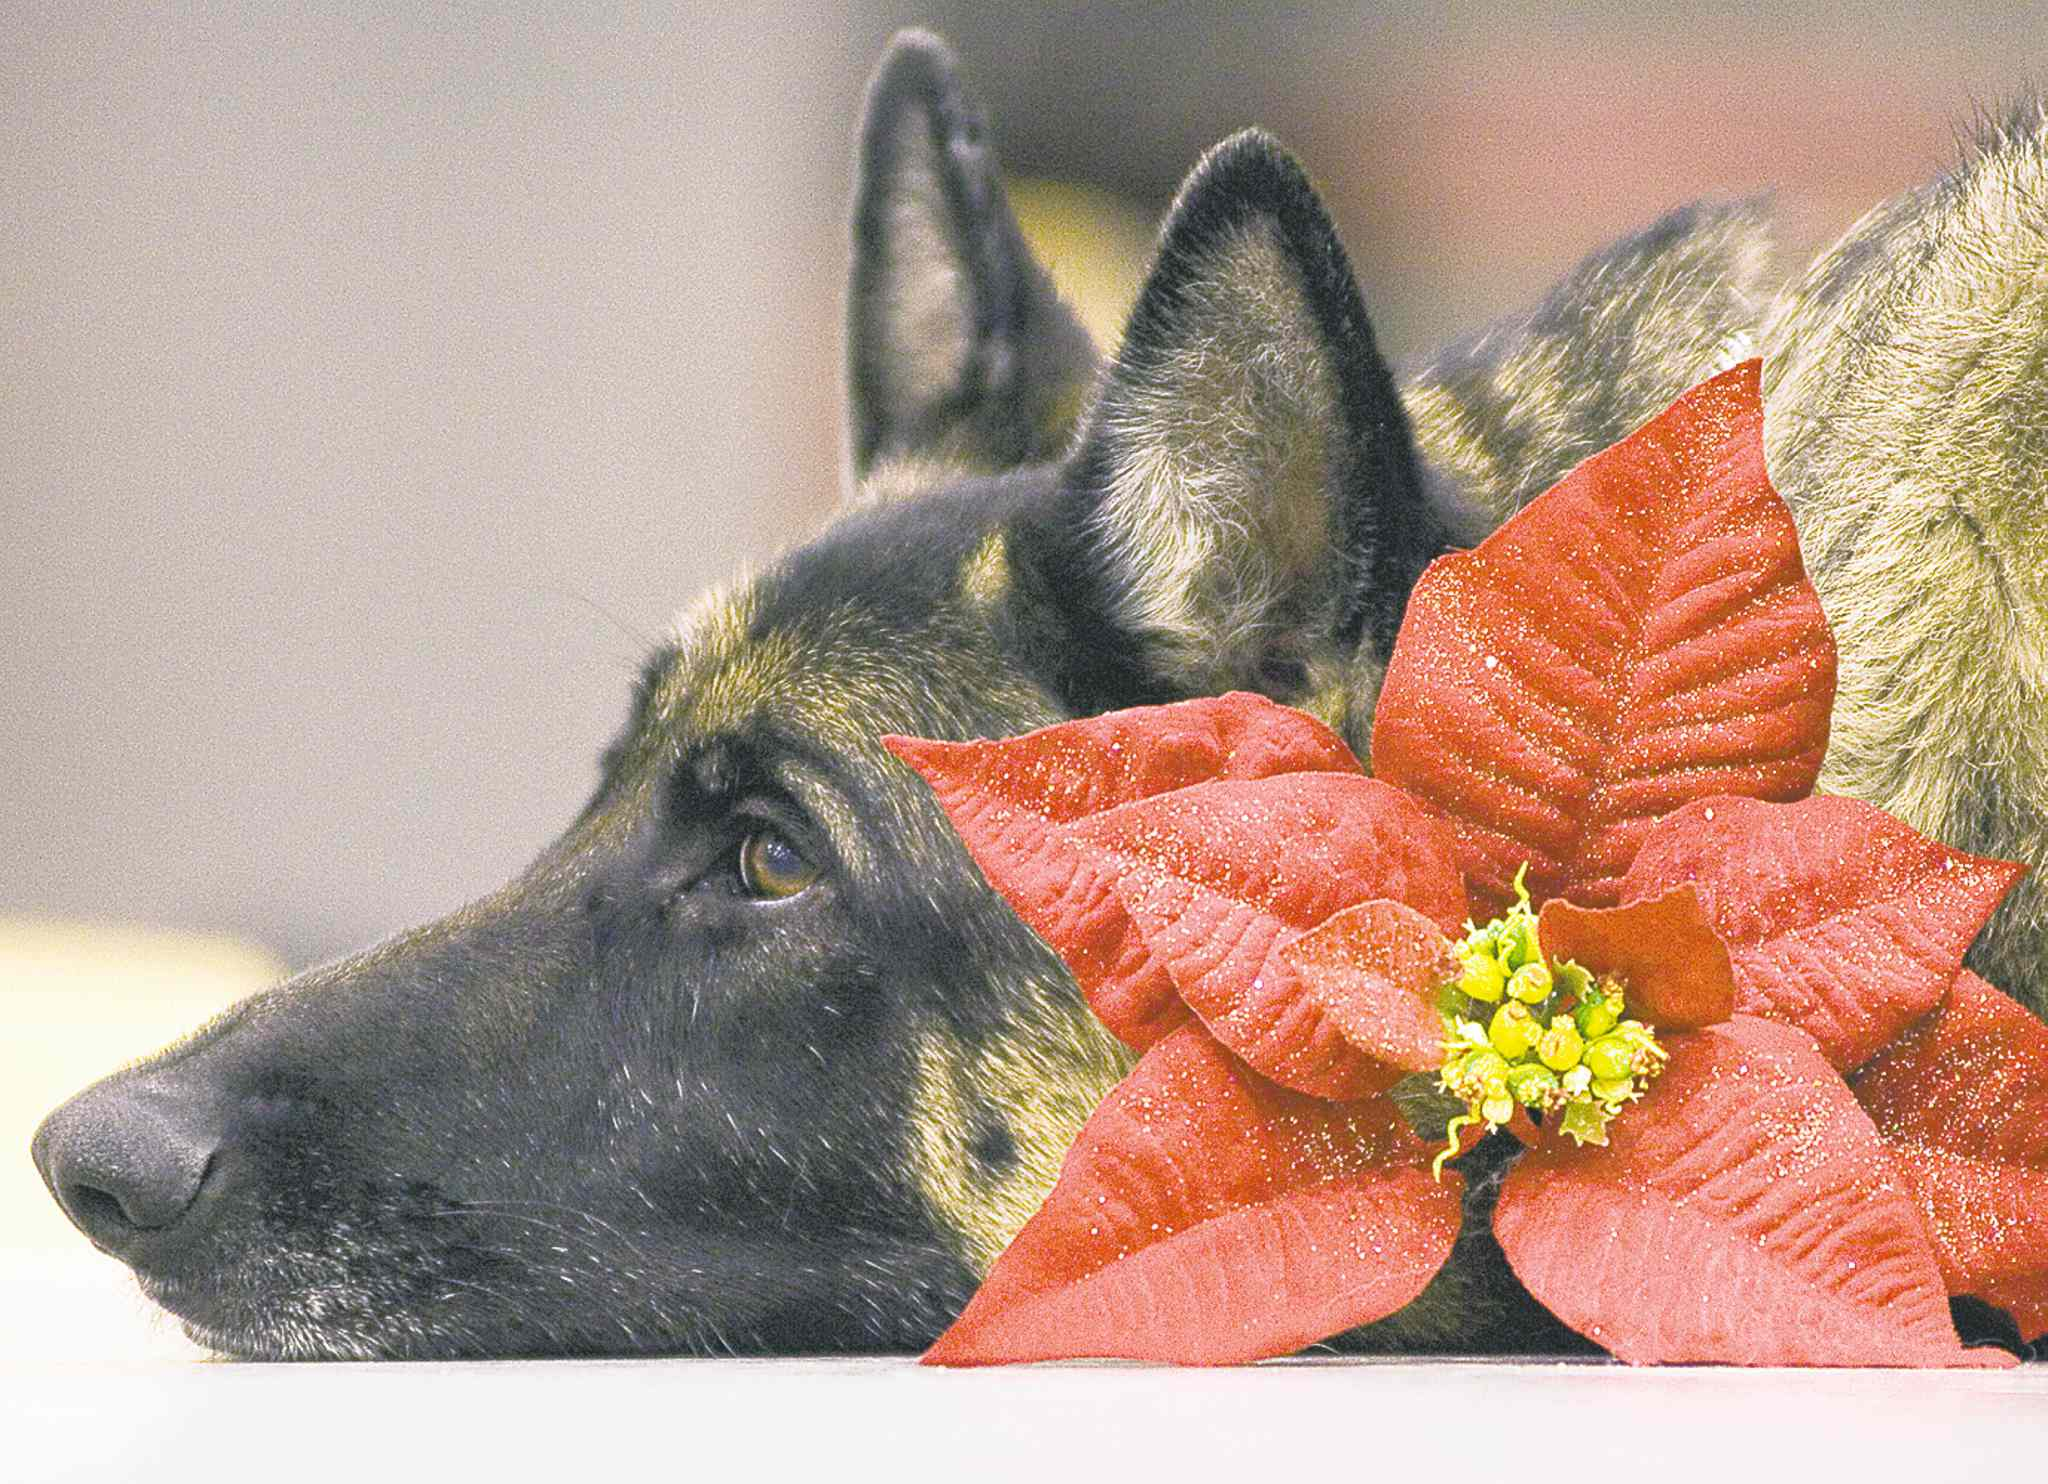 It's important to keep pet safety in mind while family and friends are enjoying the season.